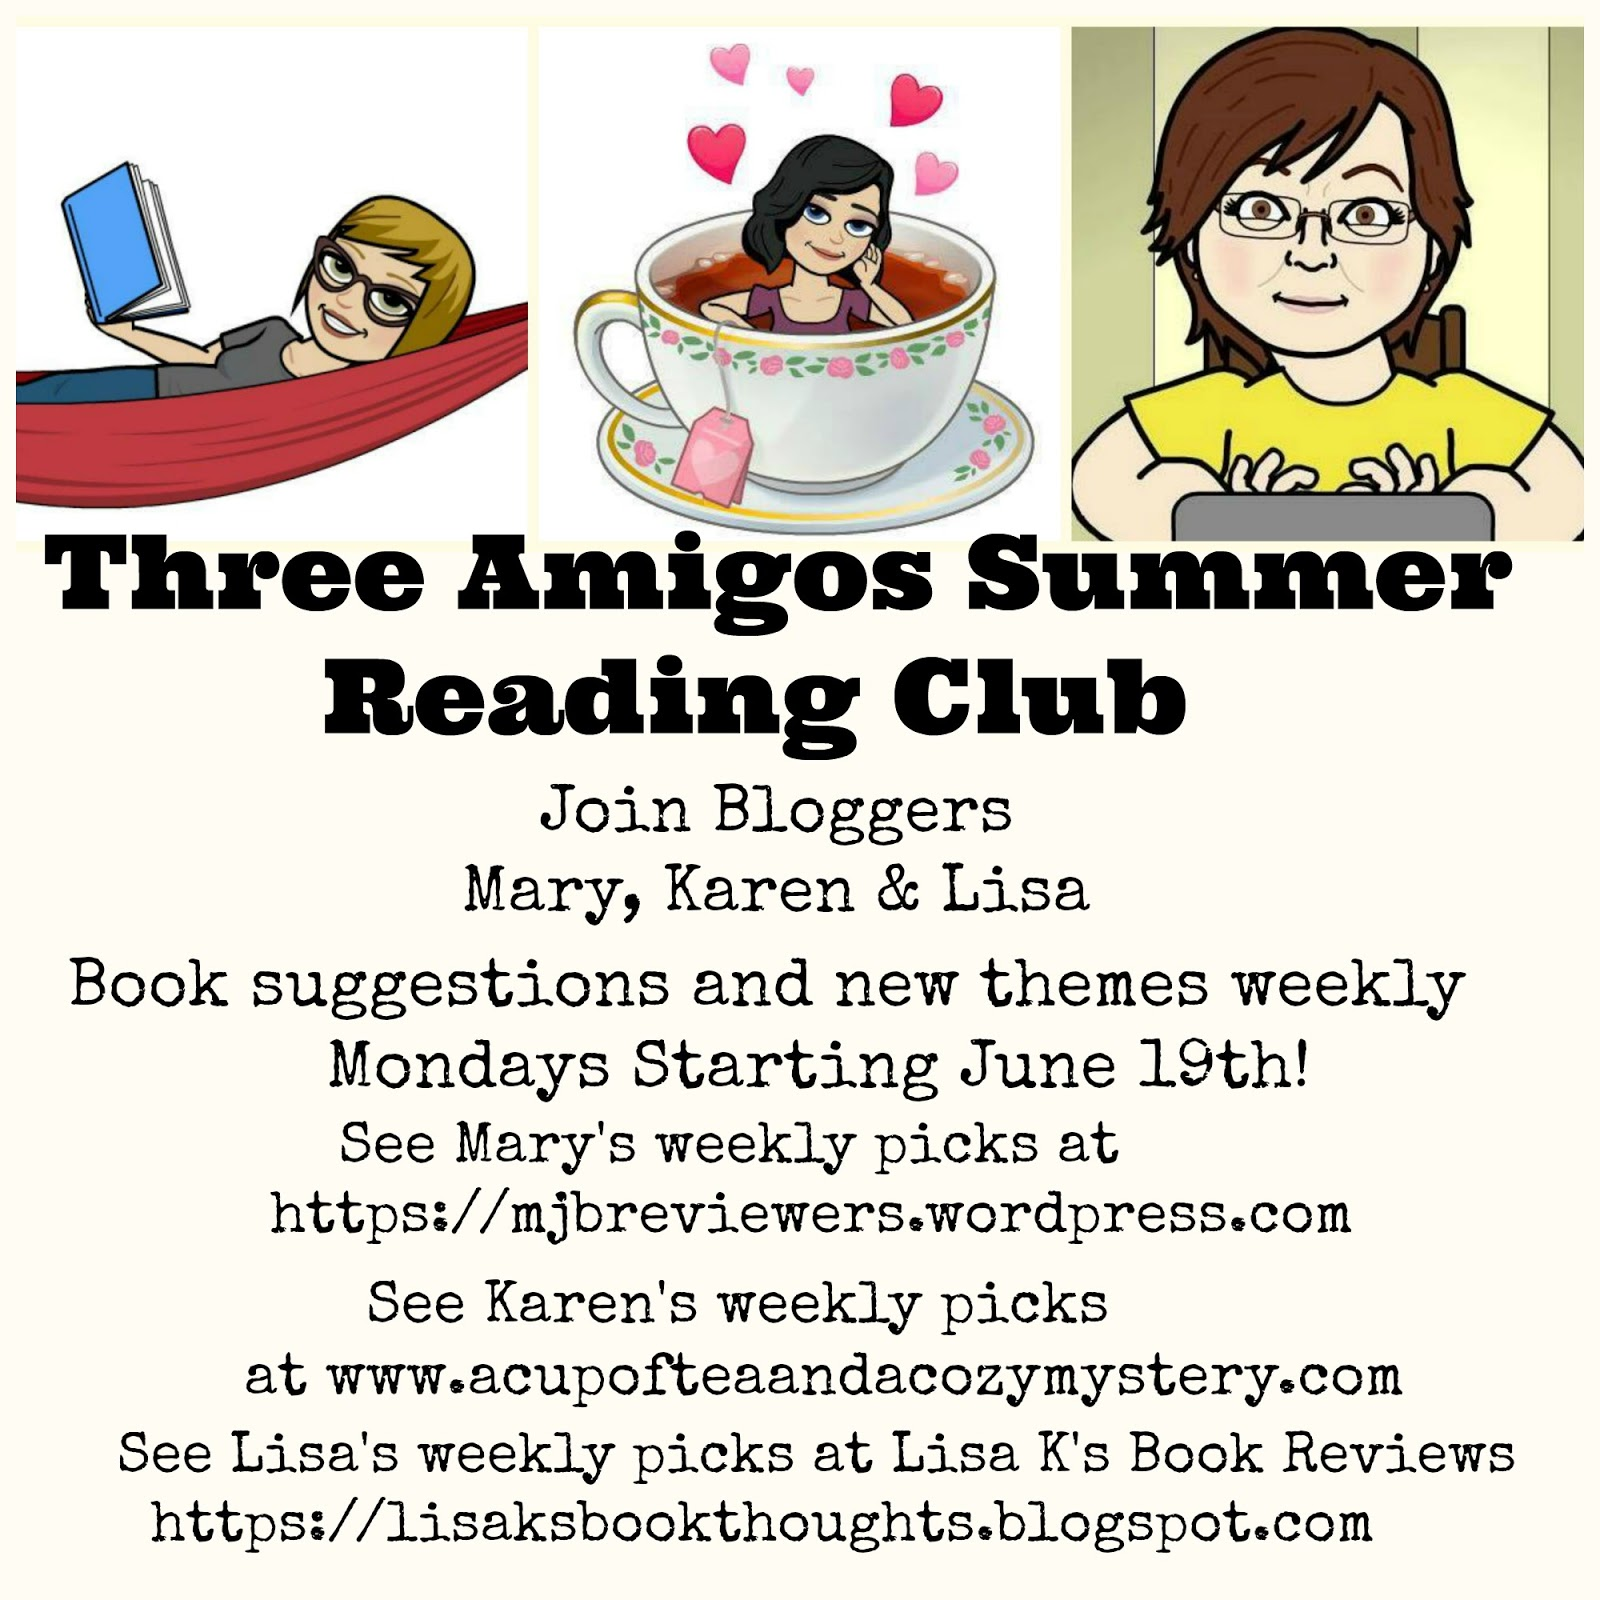 Three Amigos Summer Reading Club